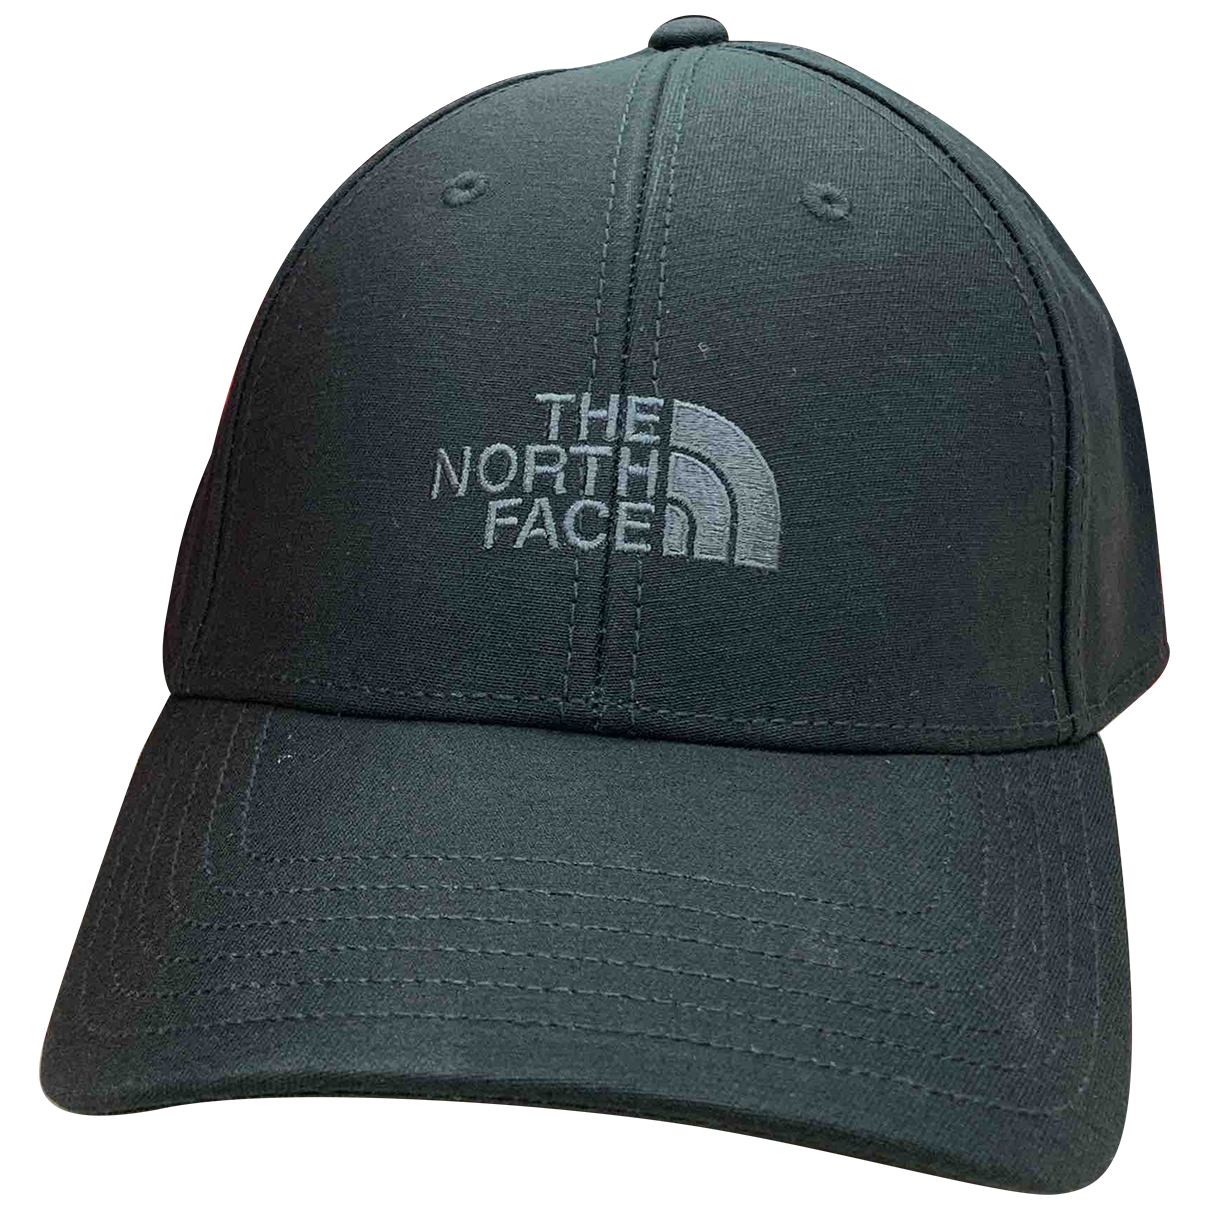 The North Face \N Black Cotton hat for Women 55 cm